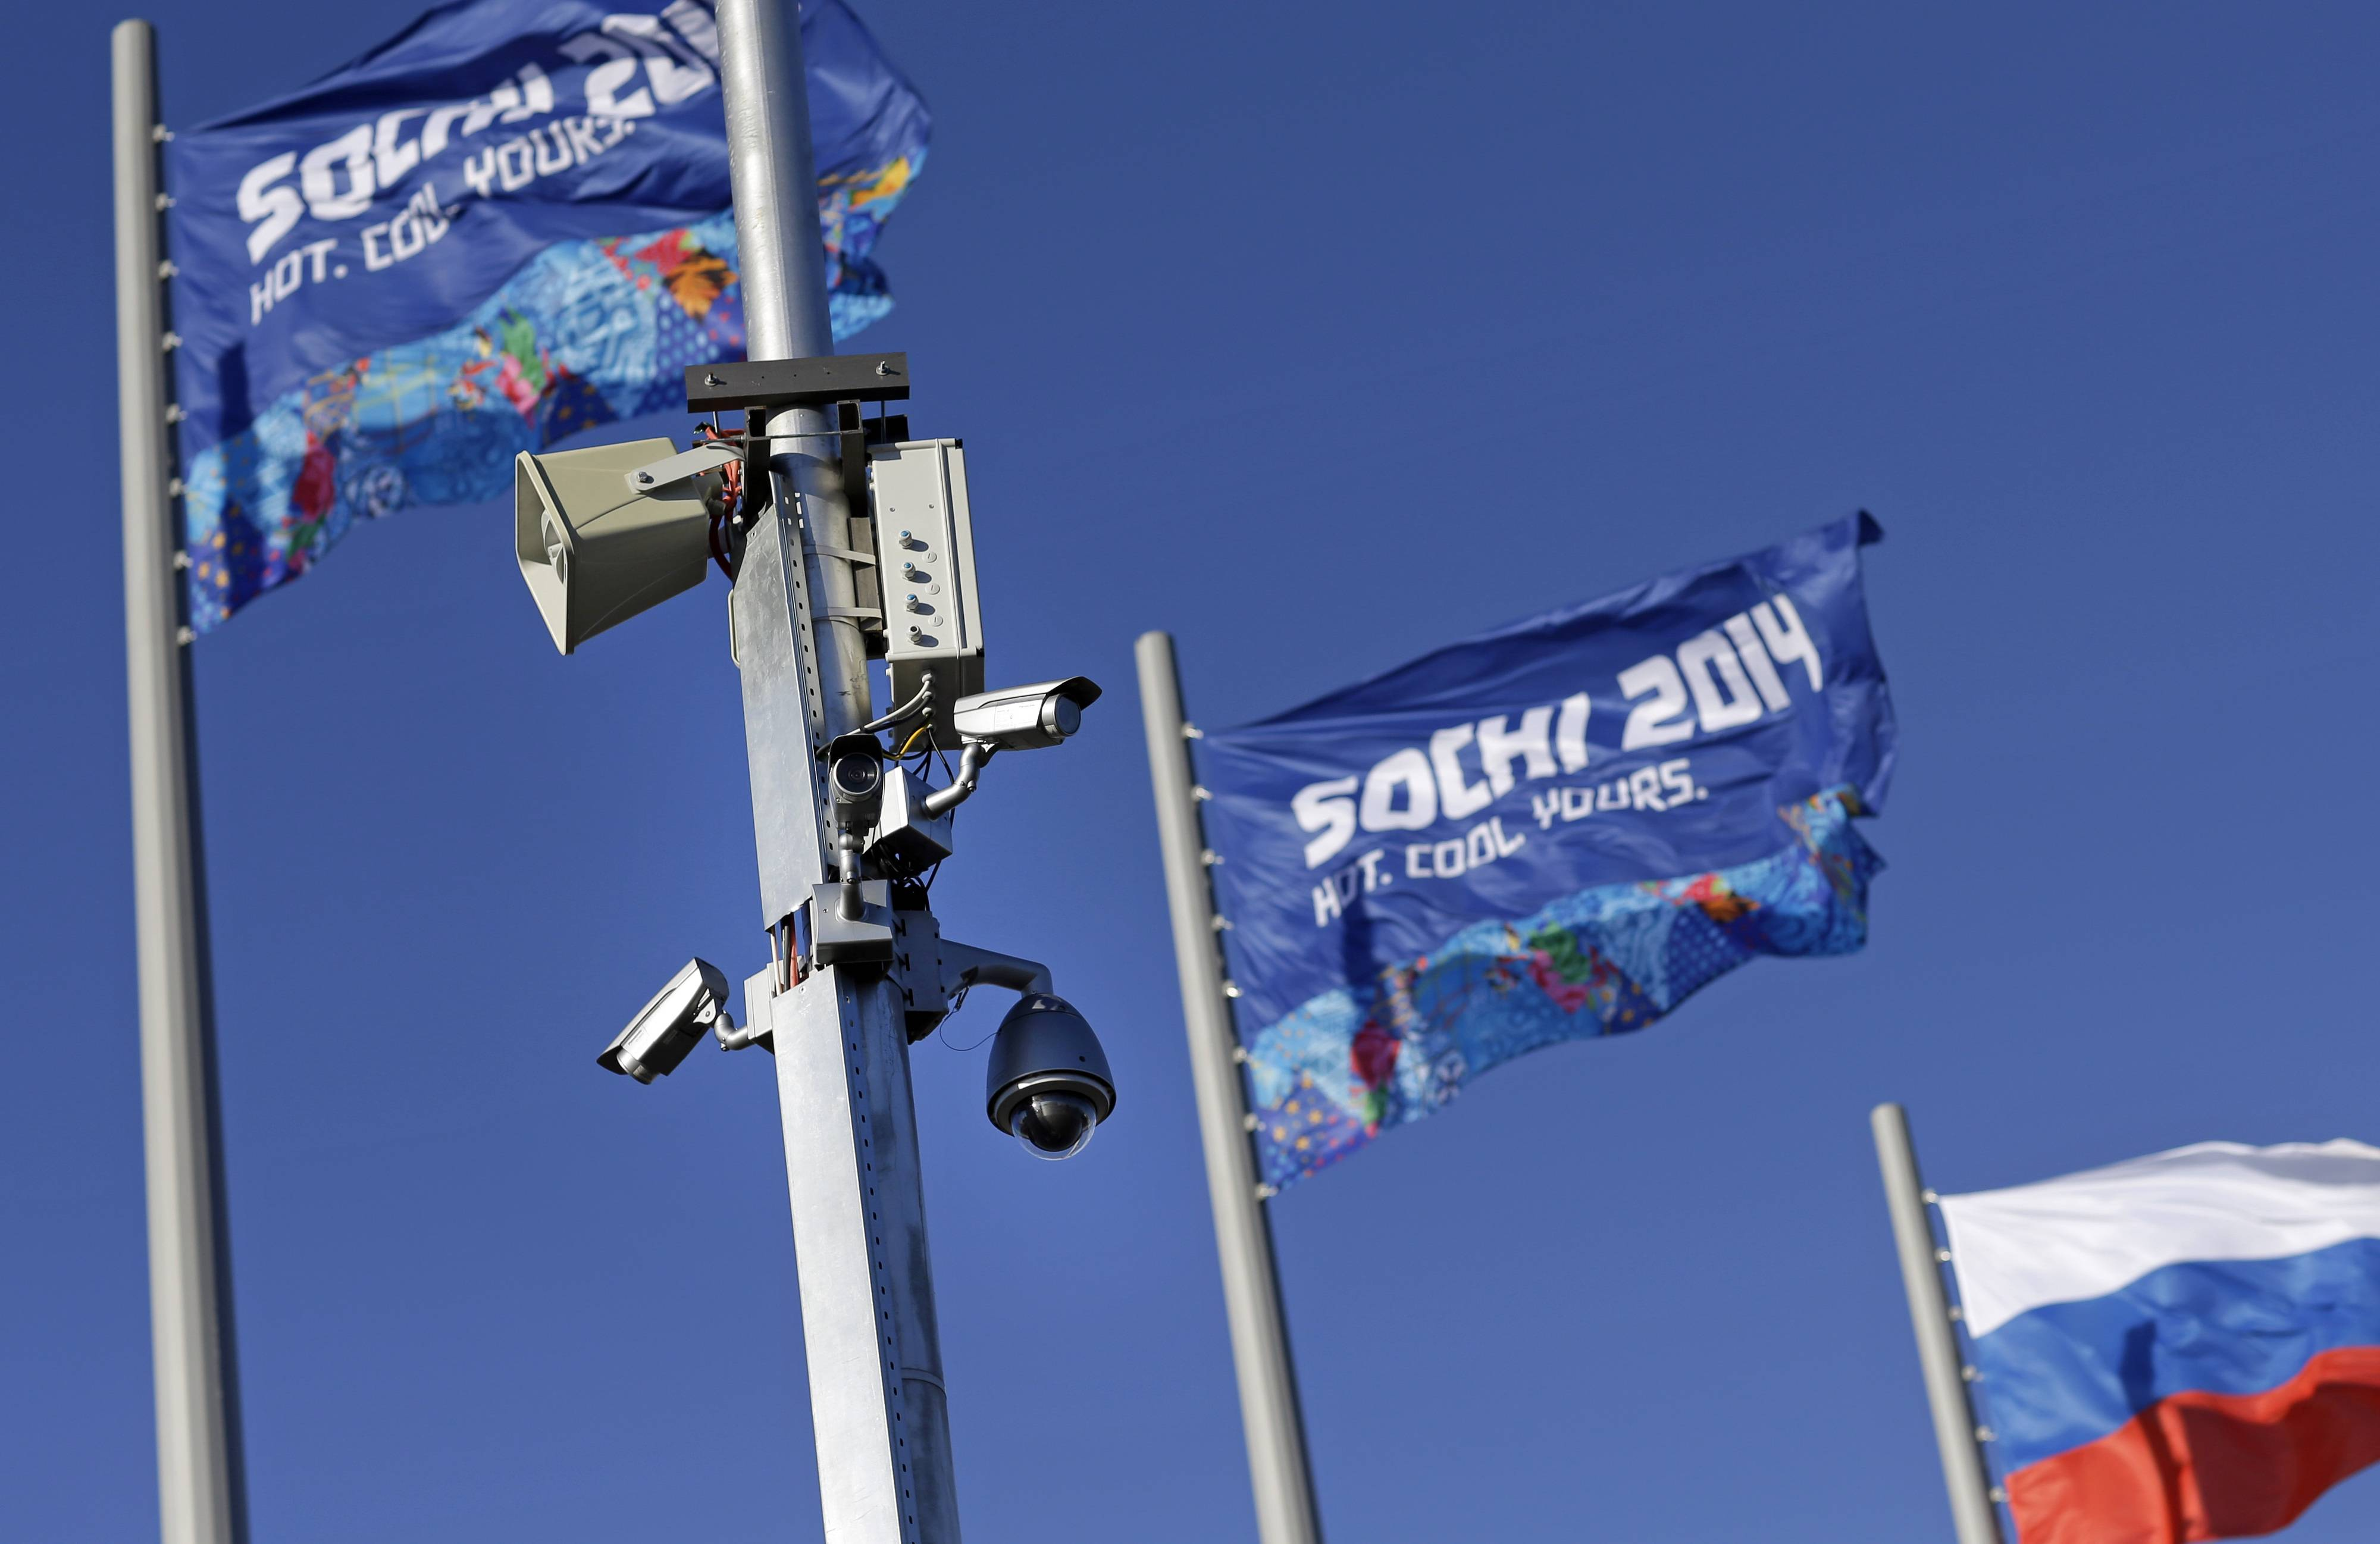 A bank of security cameras hang from a pole in Olympic Park as preparations take place for the 2014 Winter Olympics, Monday, Feb. 3, 2014, in Sochi, Russia. (AP Photo/Patrick Semansky)Bloomberg News